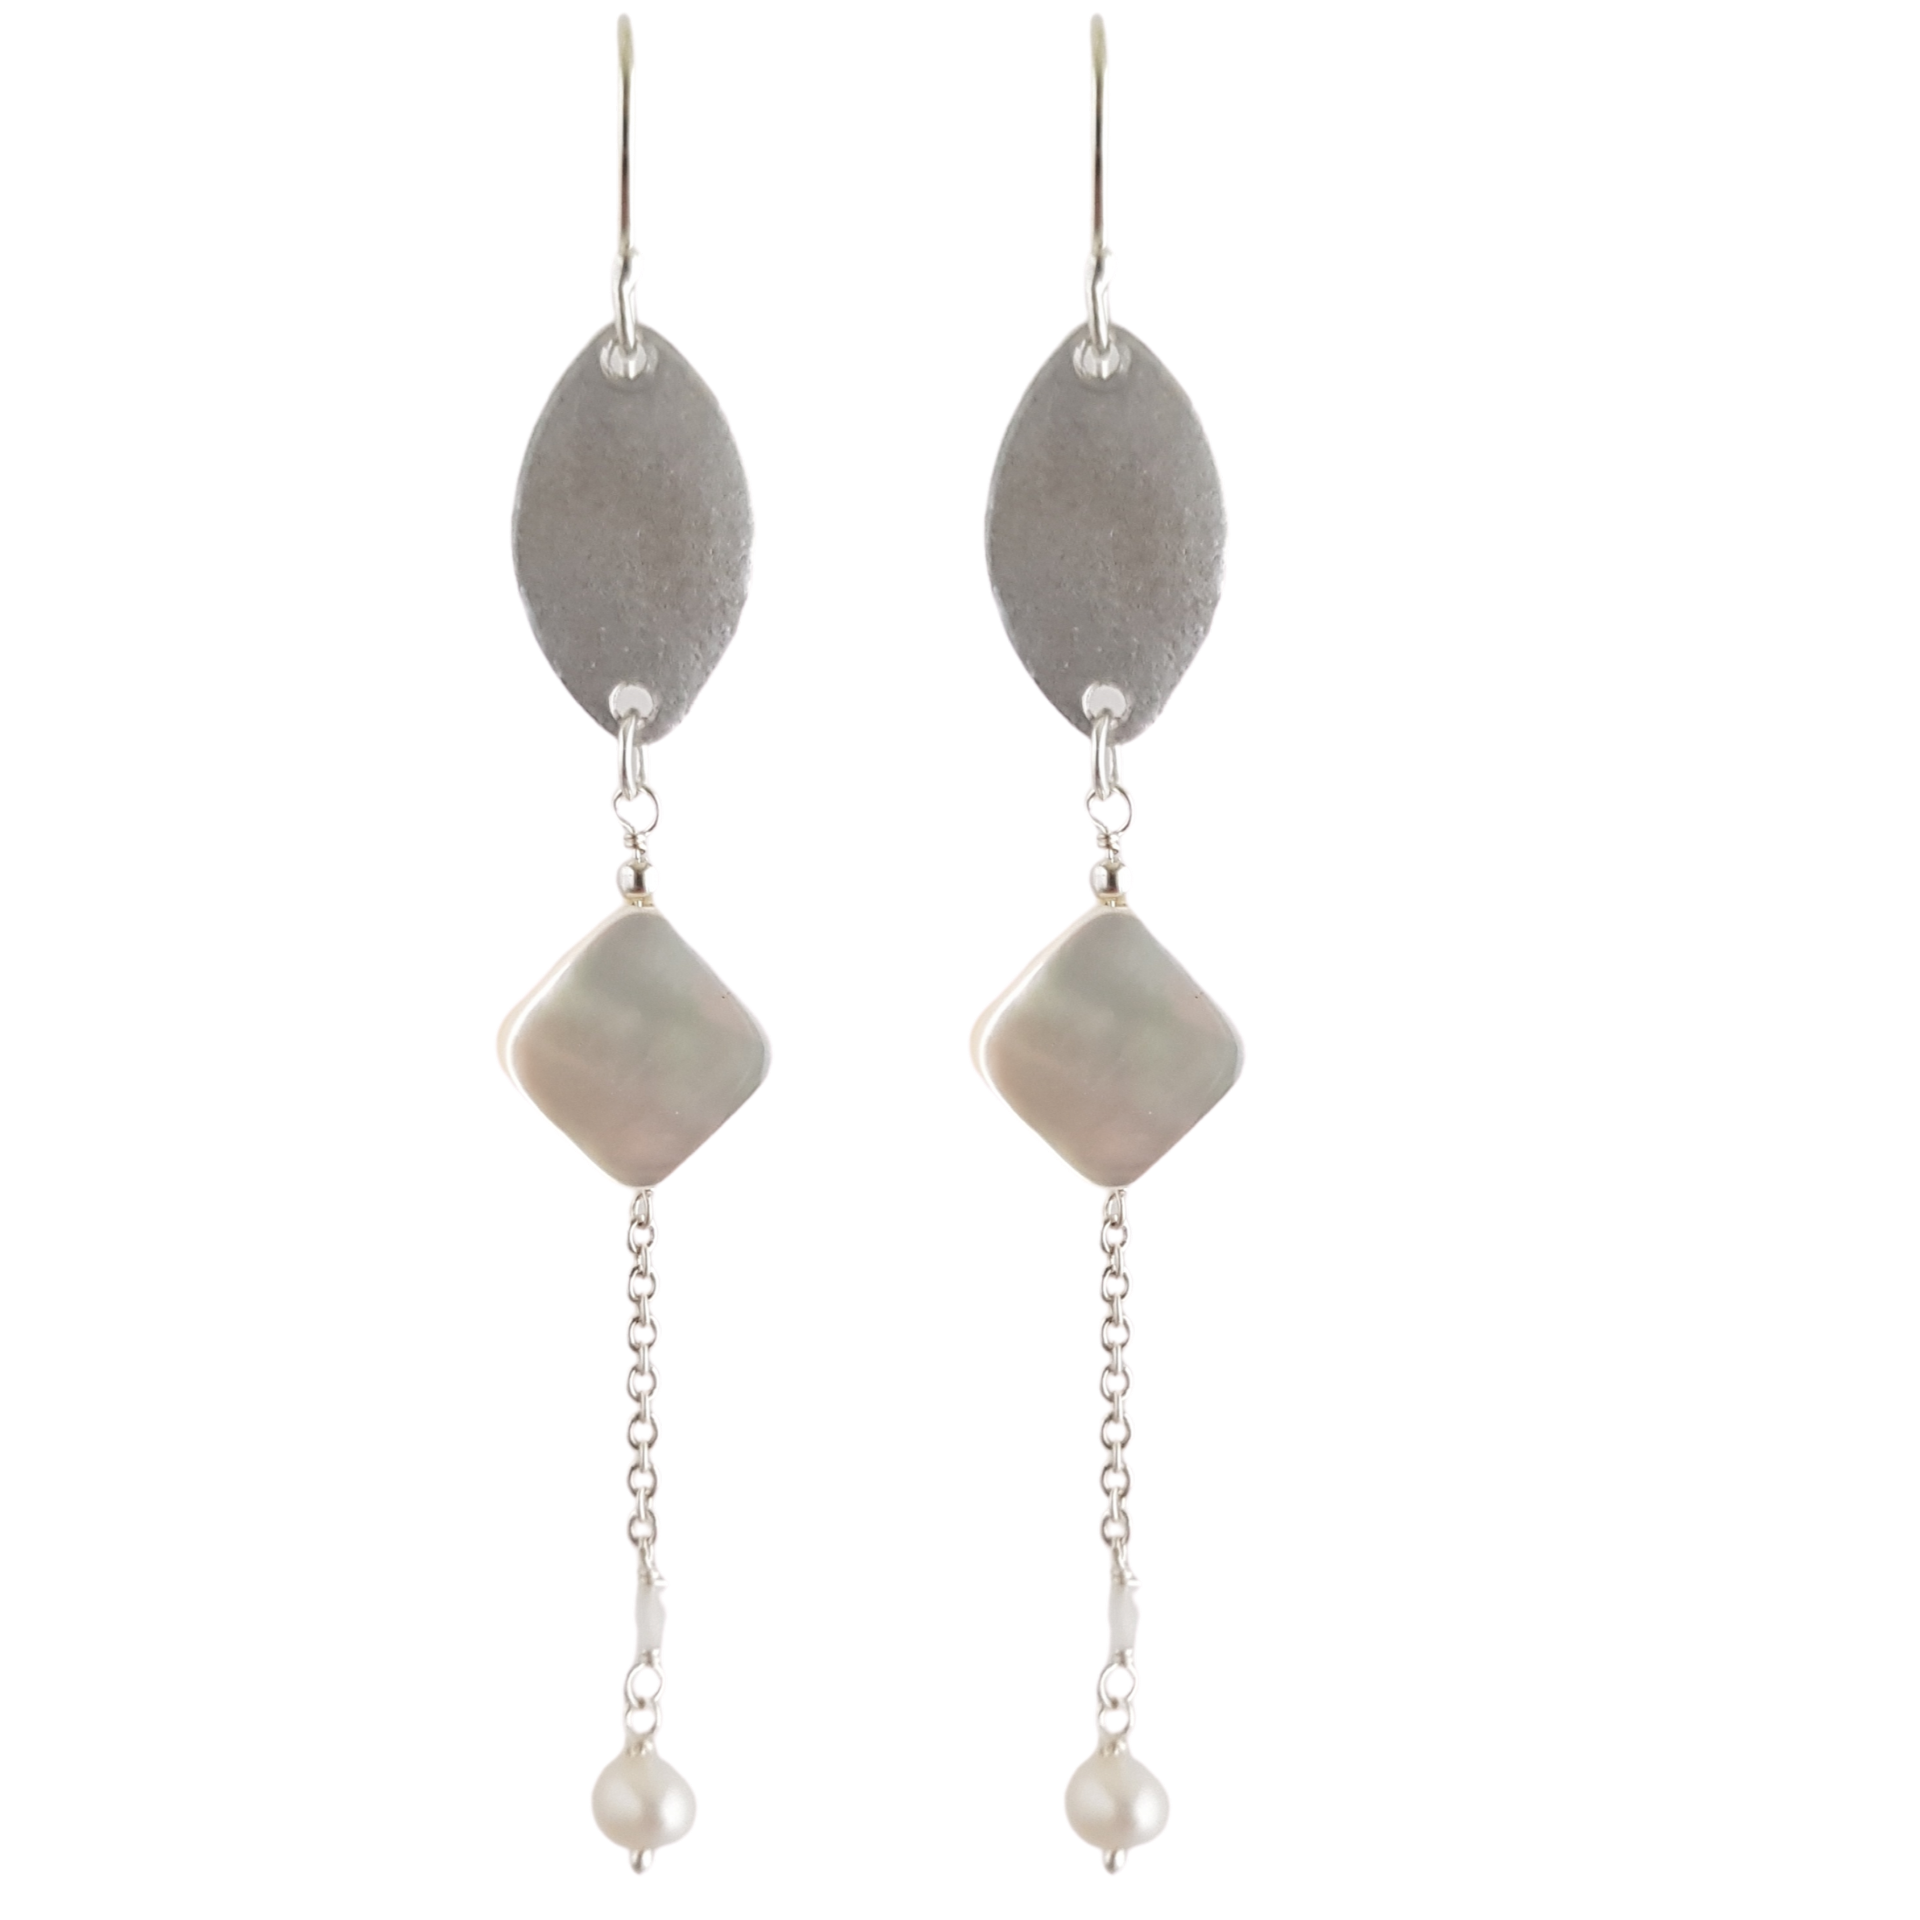 LOVEbomb Moonstone and Leaf Multi Drop Sterling Silver Hook Earrings